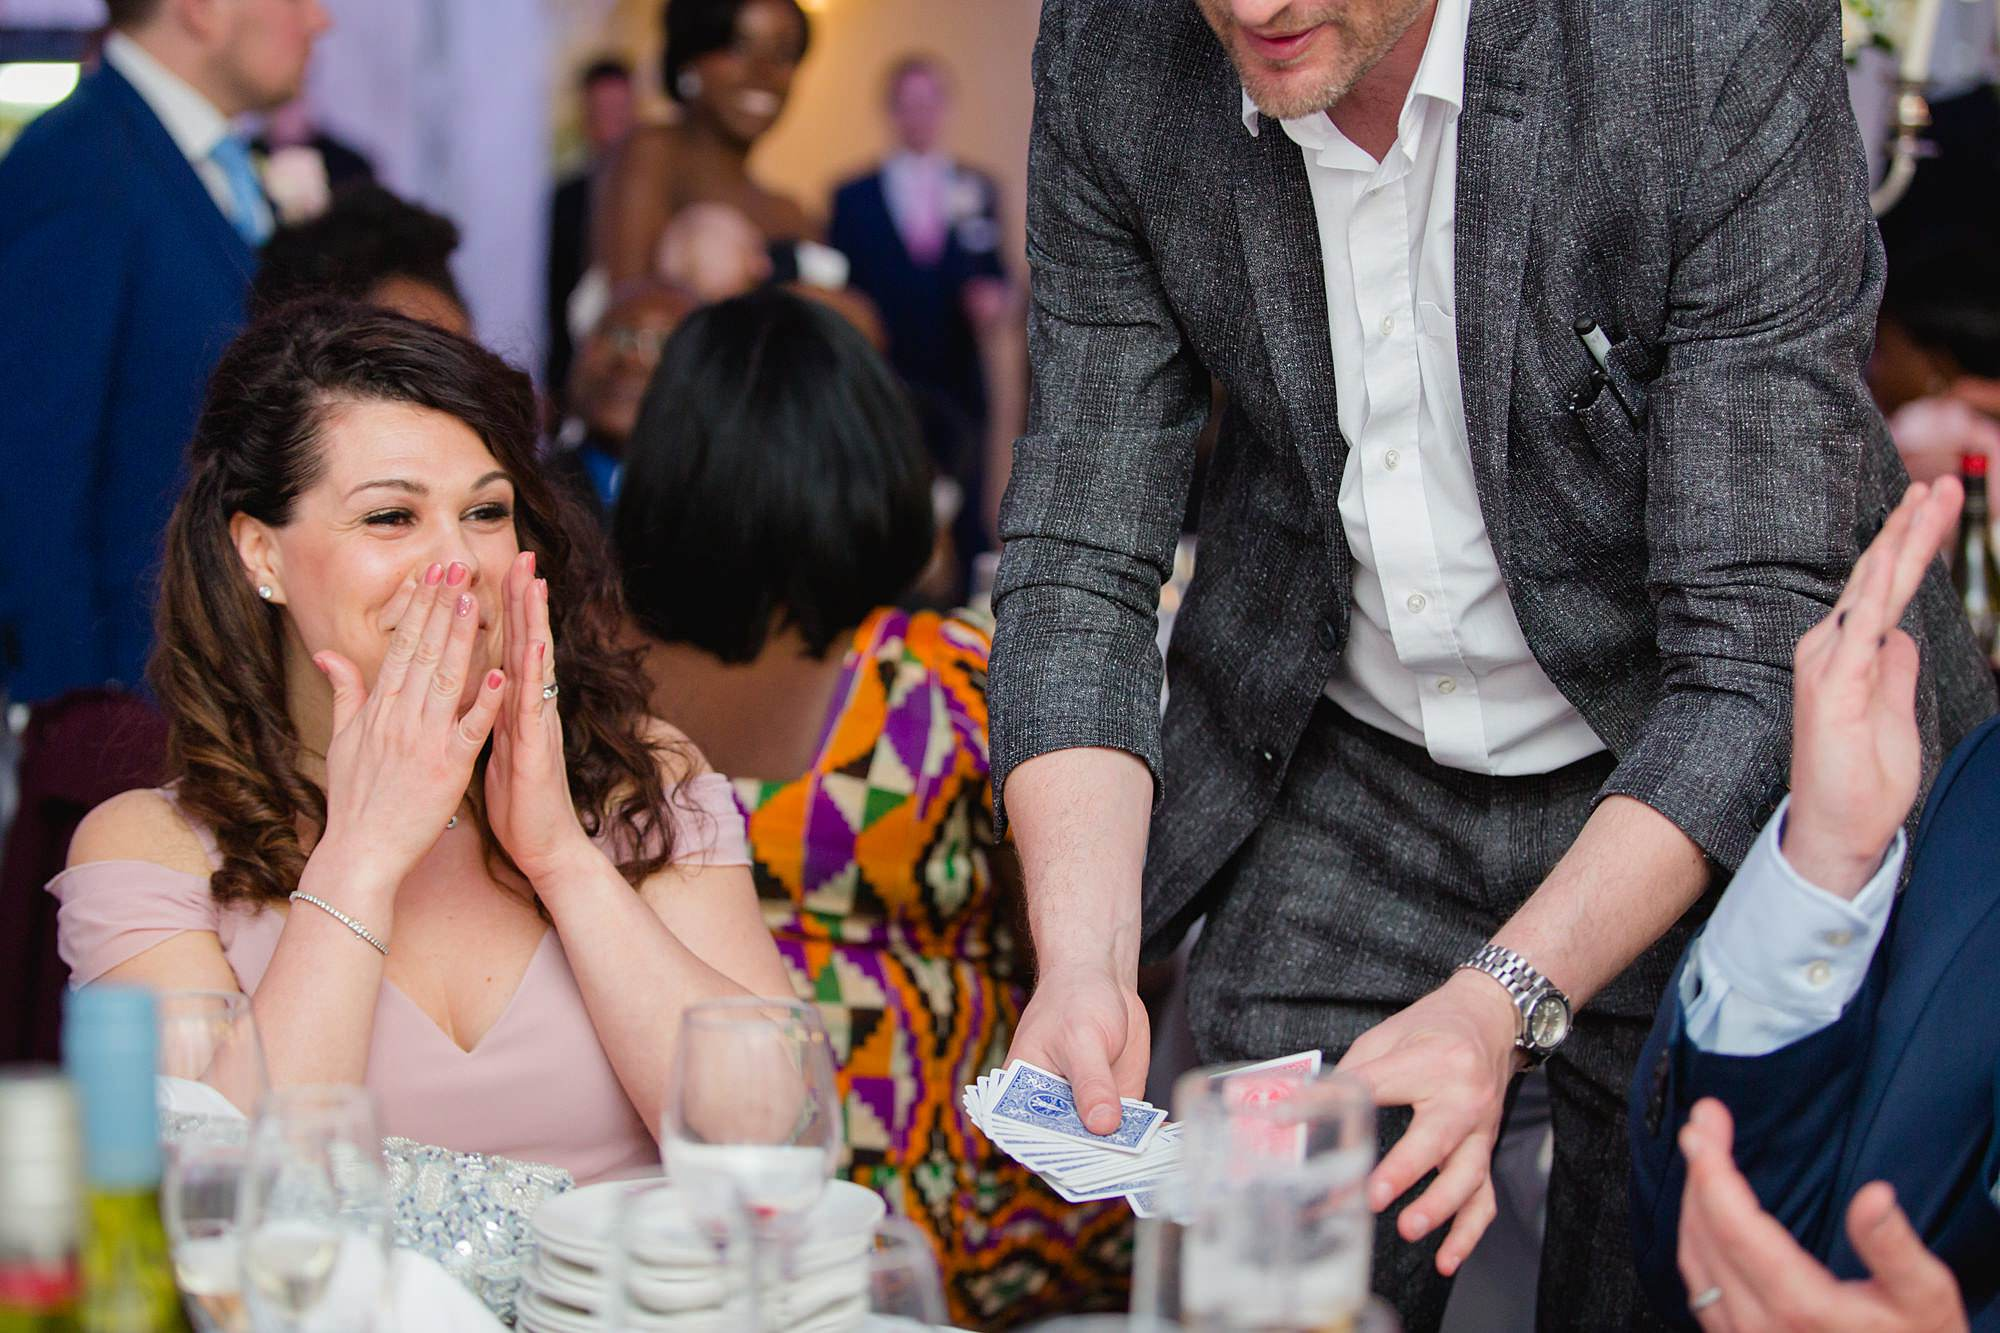 Bank of England Sports Centre wedding guest reaction to magic trick